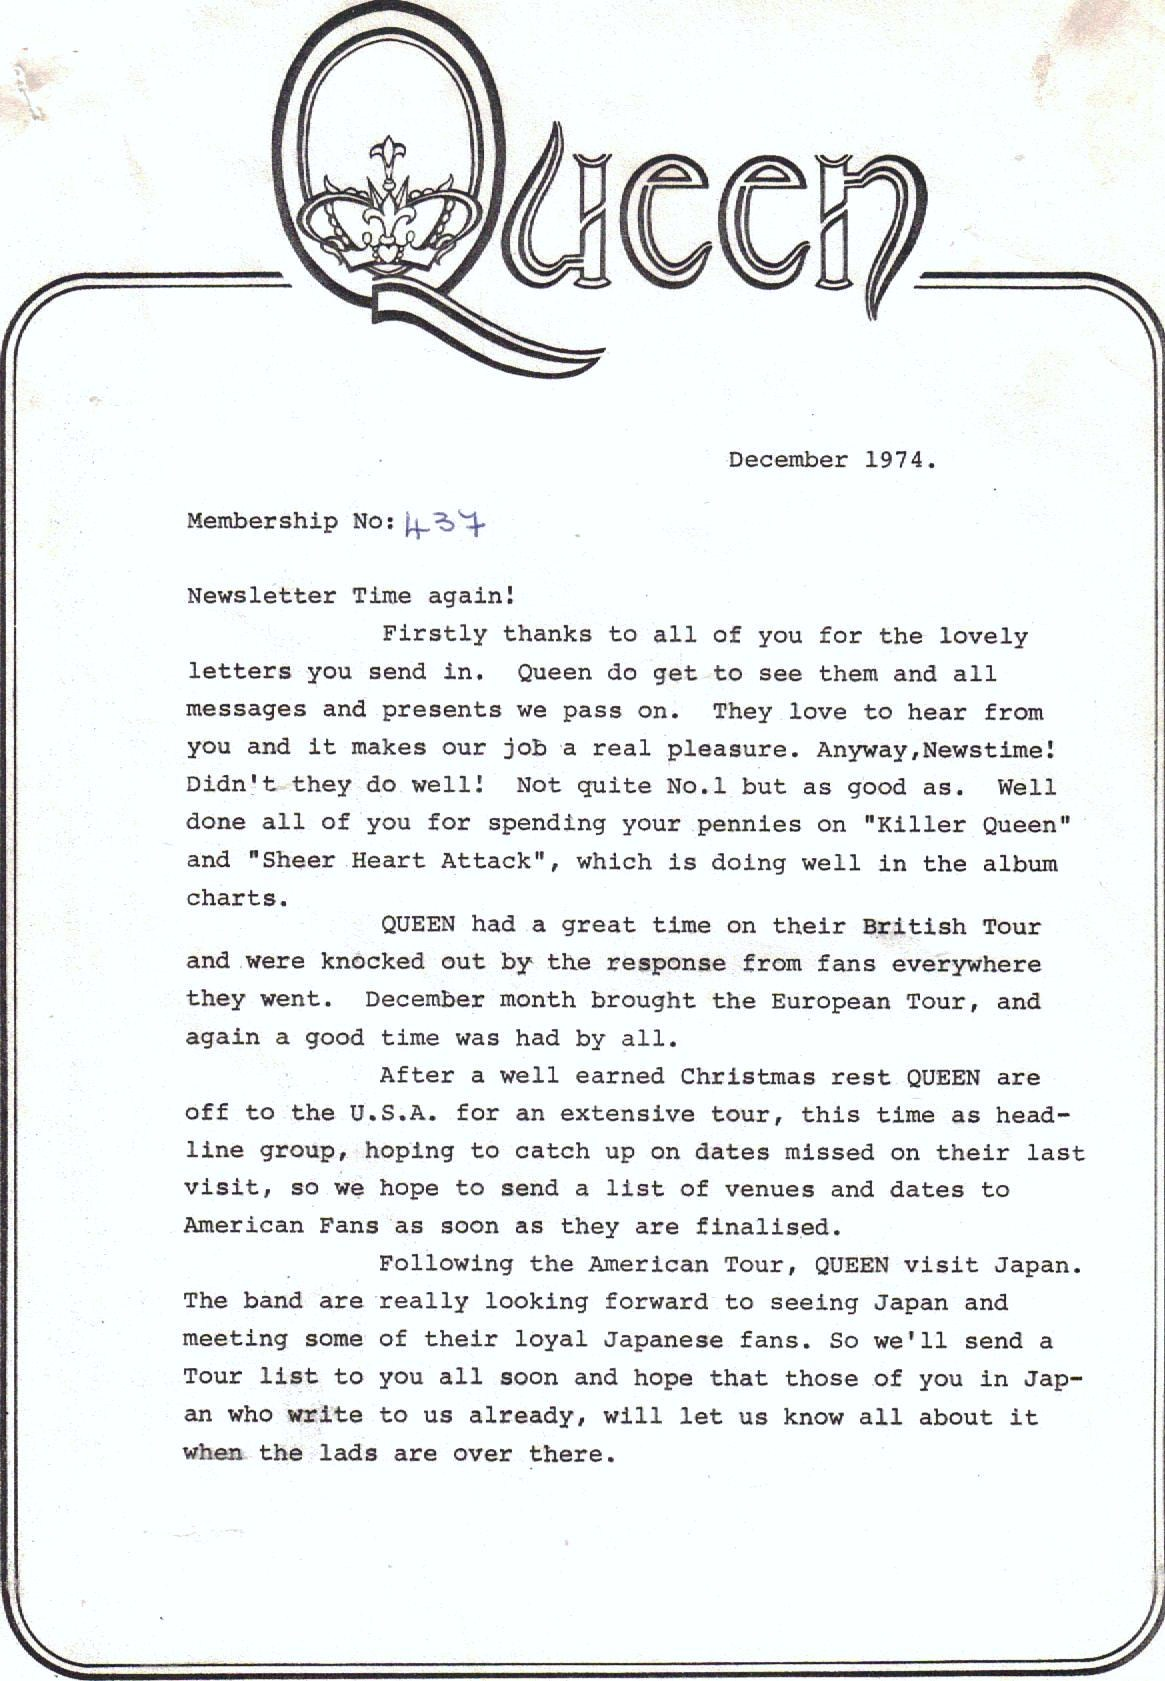 Christmas 1974 Queen newsletter